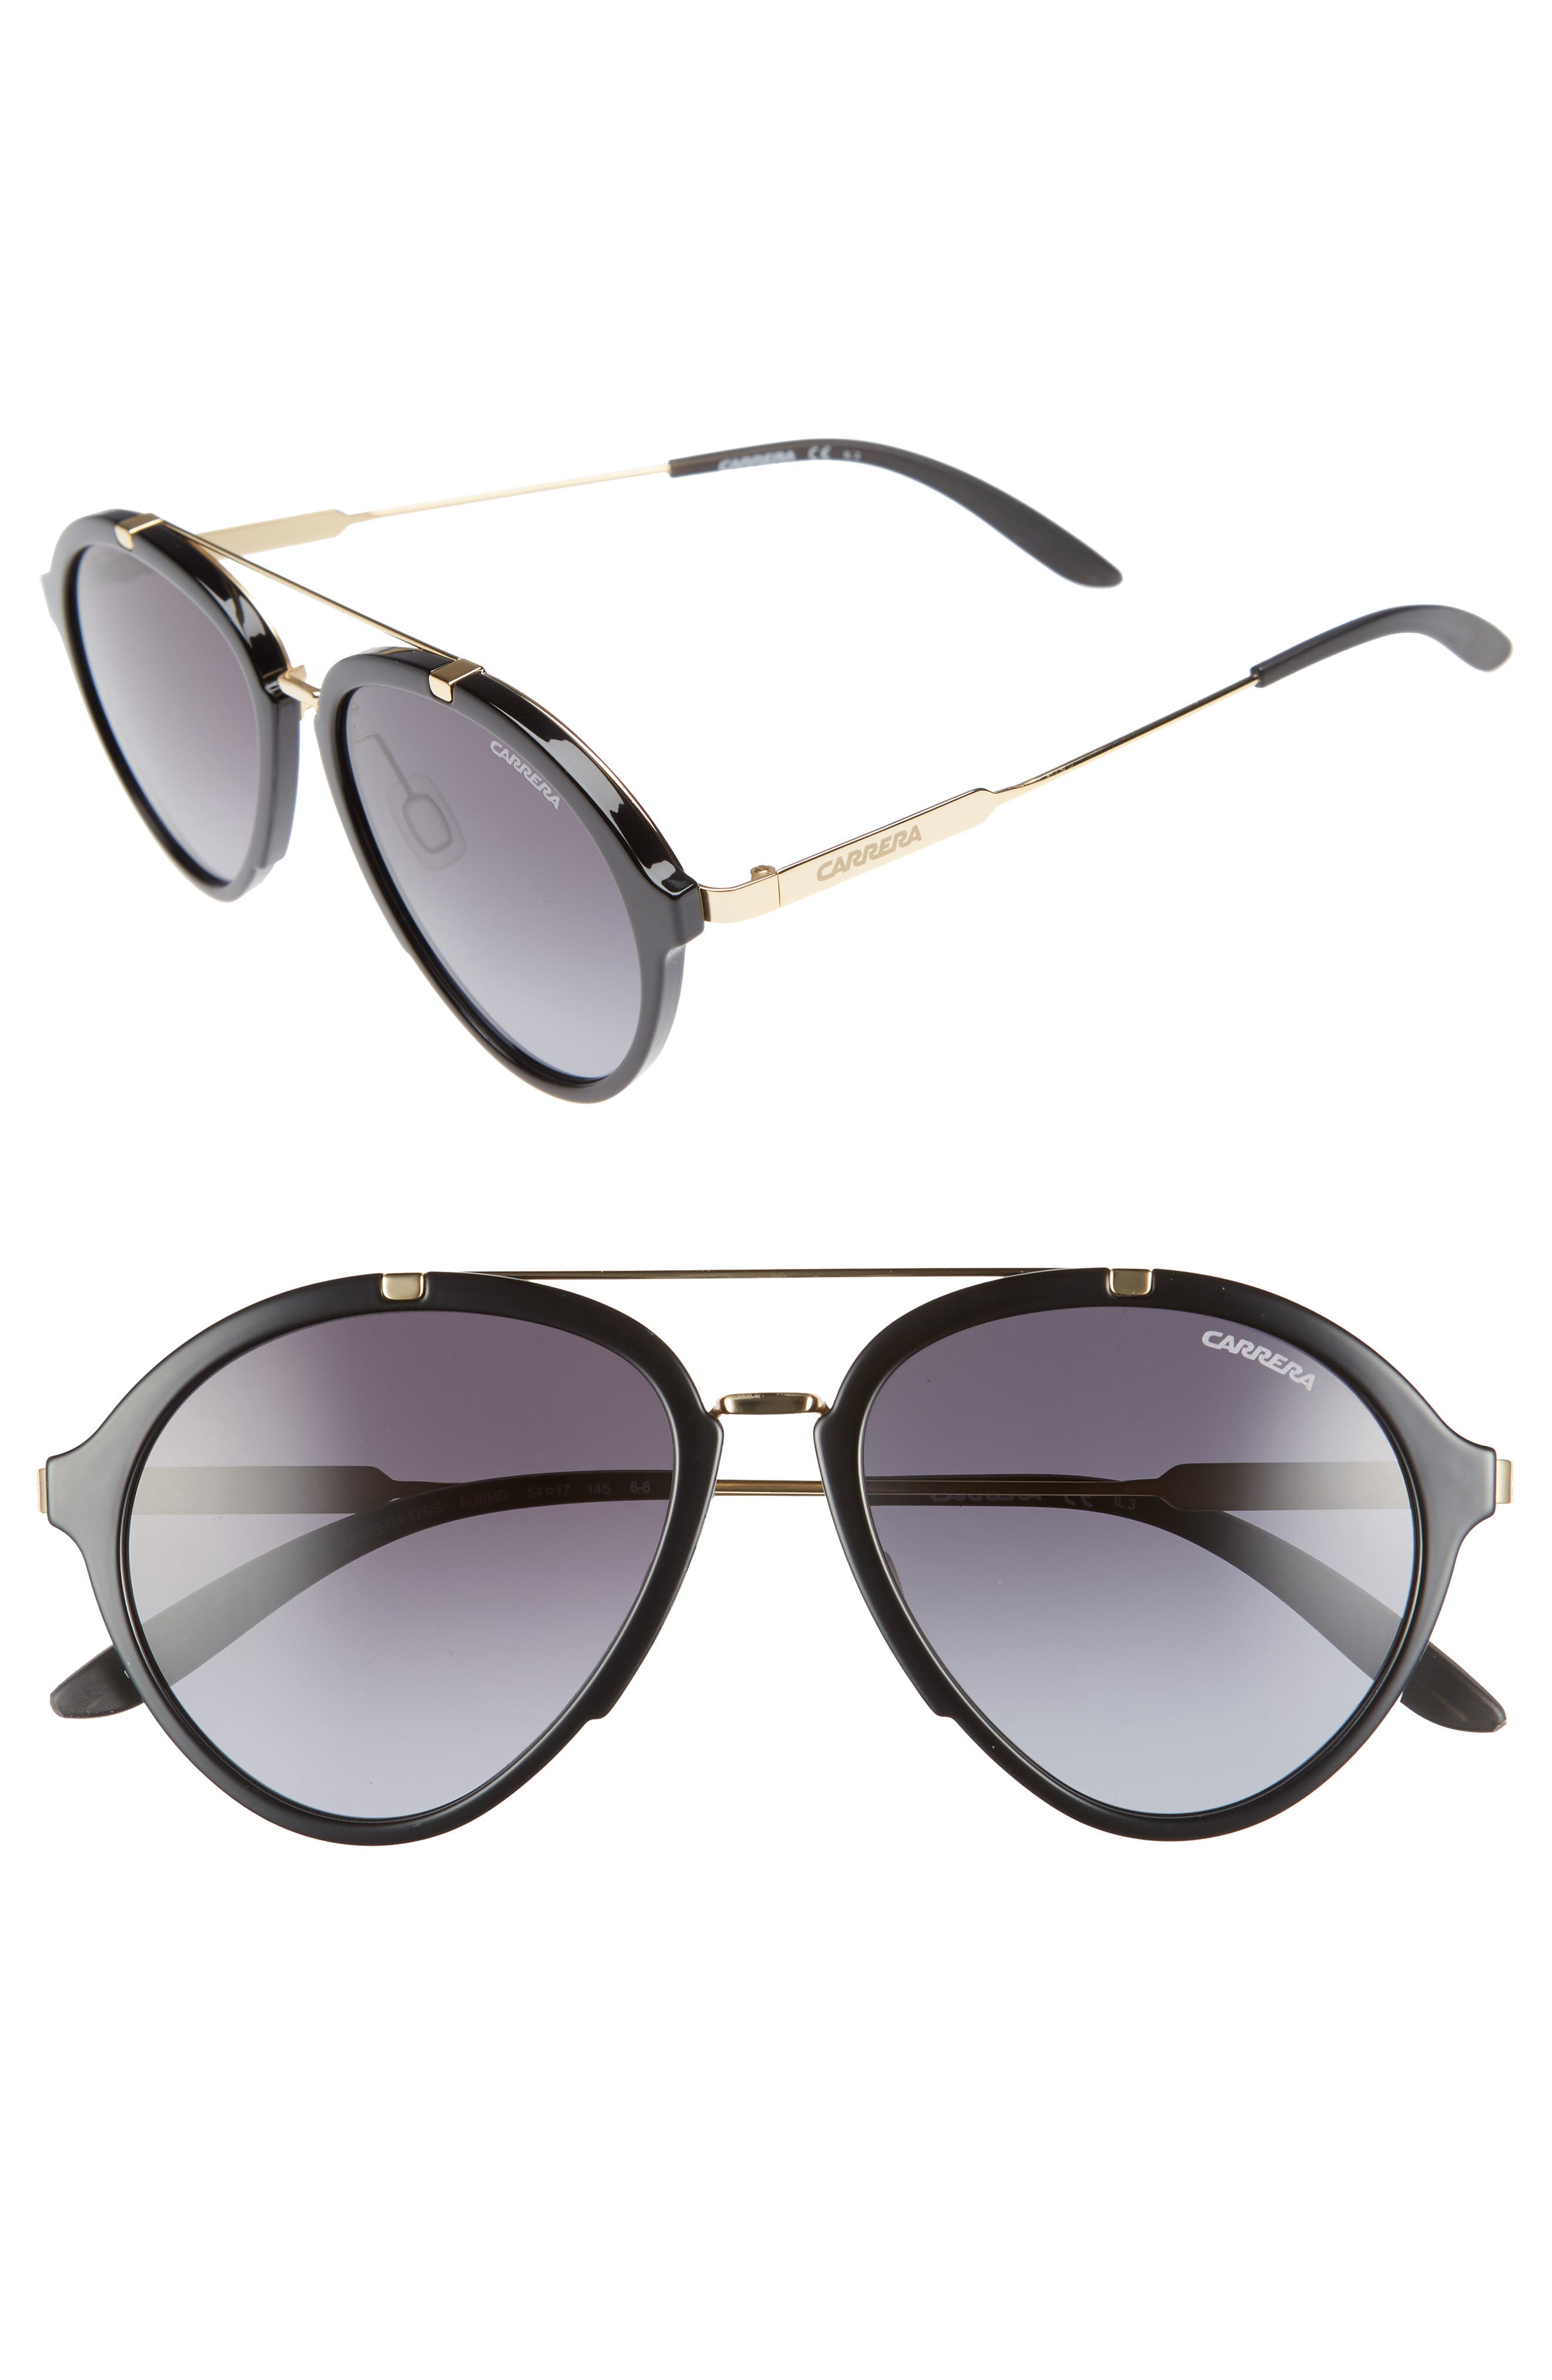 54mm Aviator Sunglasses,                         Main,                         color, Shiny Black Gold